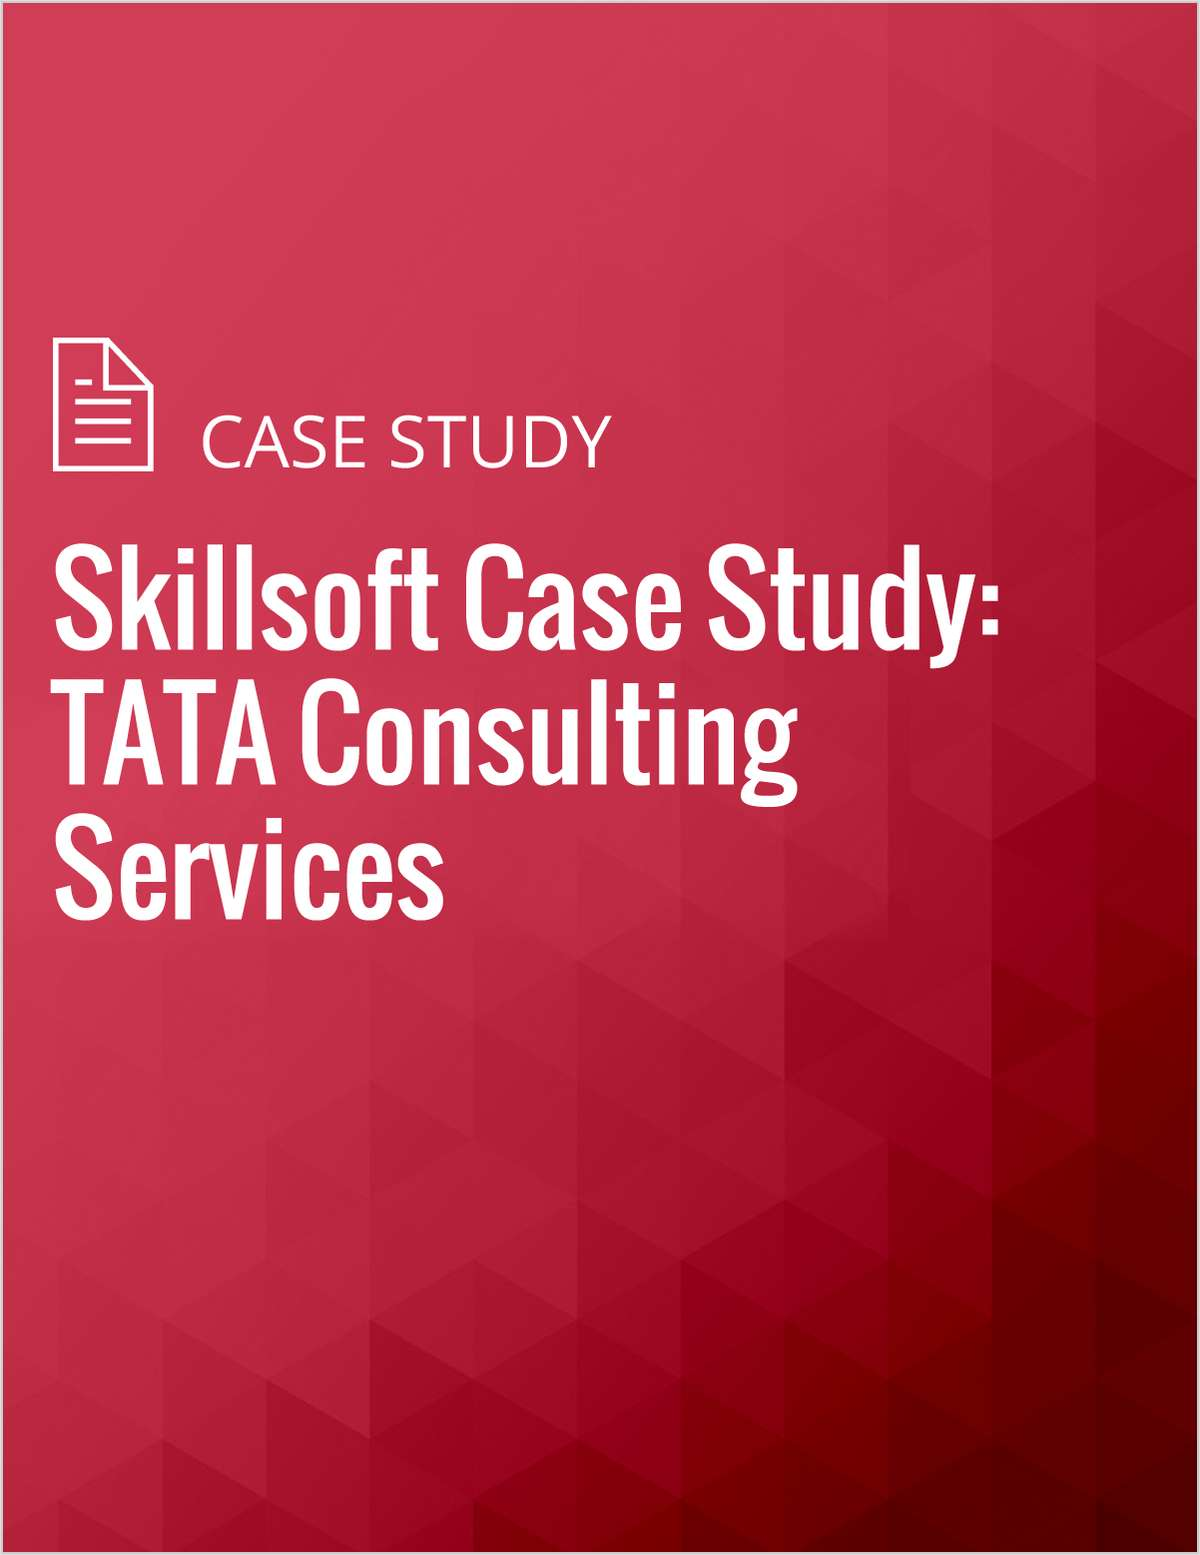 Skillsoft Case Study: TATA Consulting Services